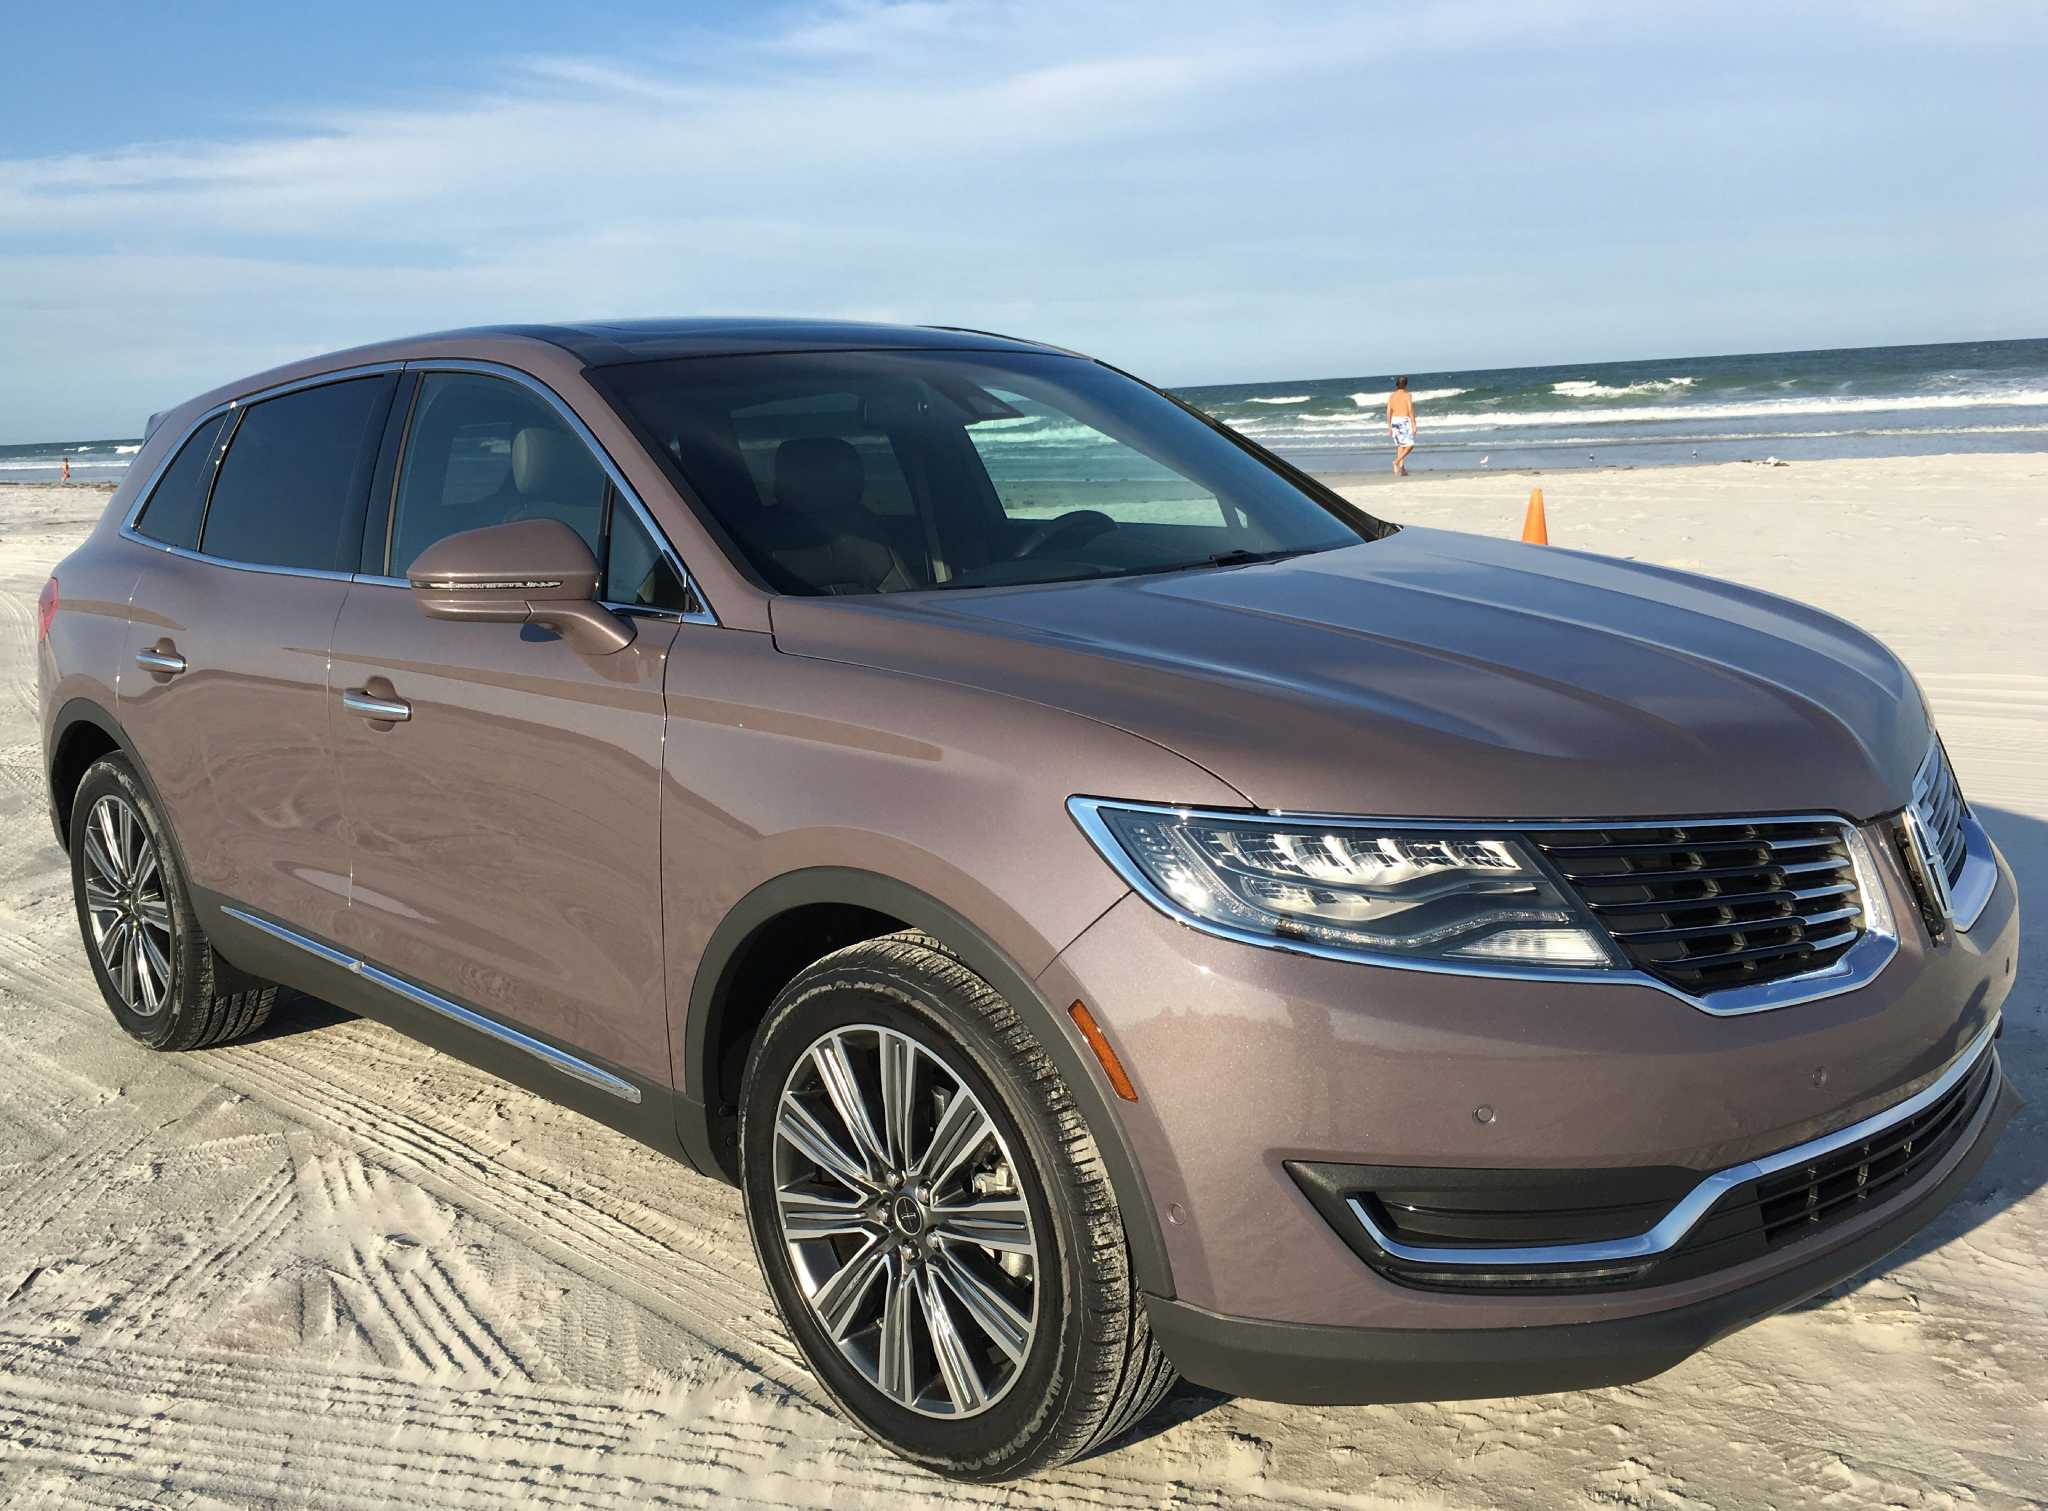 Lincoln updates the MKX luxury crossover with new styling